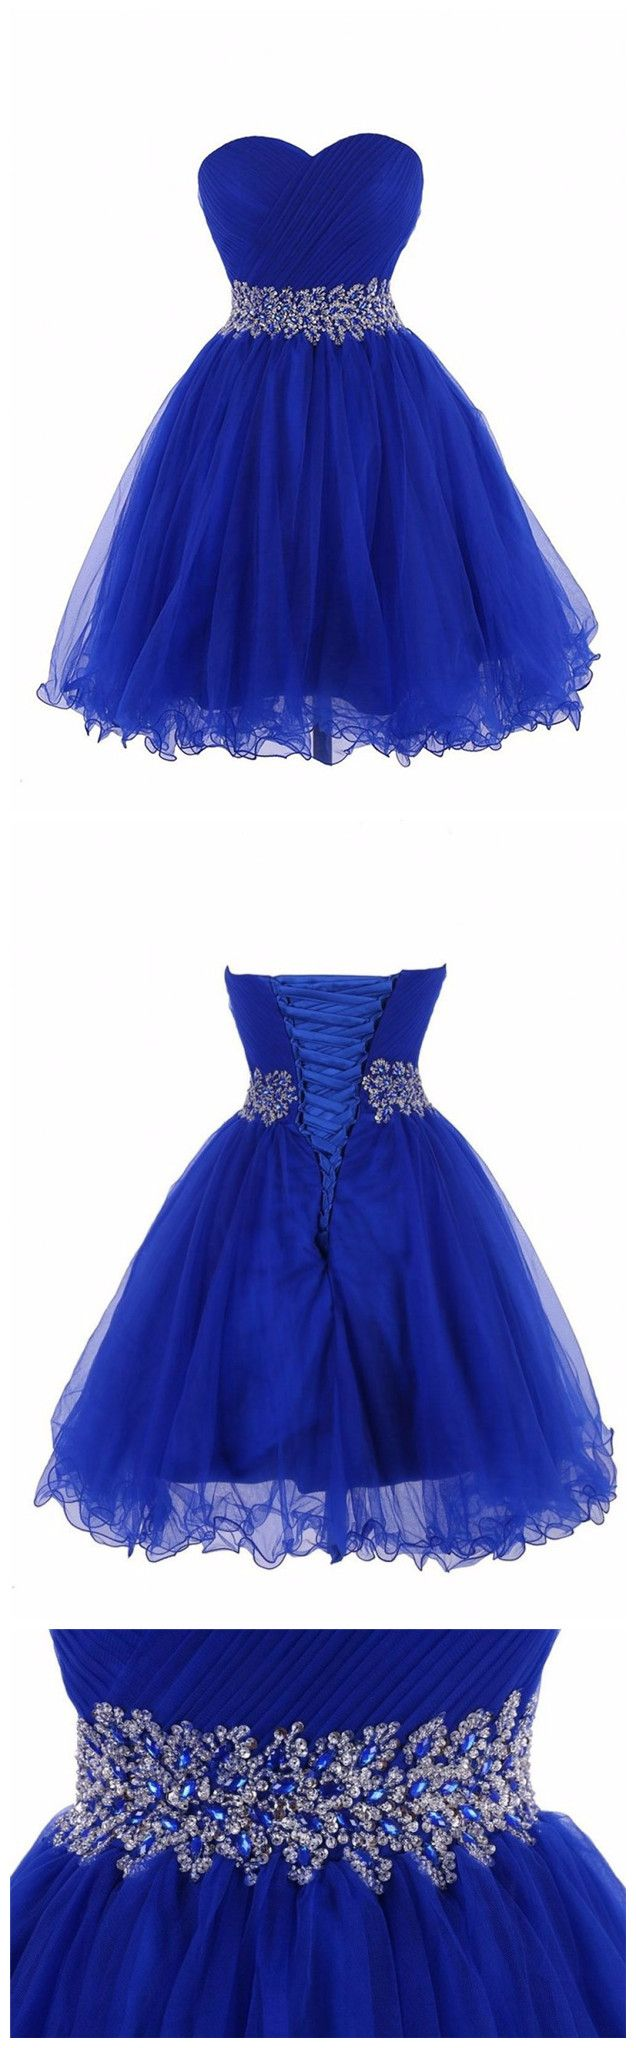 ***when+you+order+please+tell+me+your+phone+number+for+shipping+needs+.(this+is+very+important+)    ***The+details+of+this+prom+dresses***    Model+Number+:+17A66    ***+The+sizes+for+it+***    You+can+make+the+dress+in+standard+size+or+custom+size.+If+you+choose+the+custom+size,+we+need+the+foll...